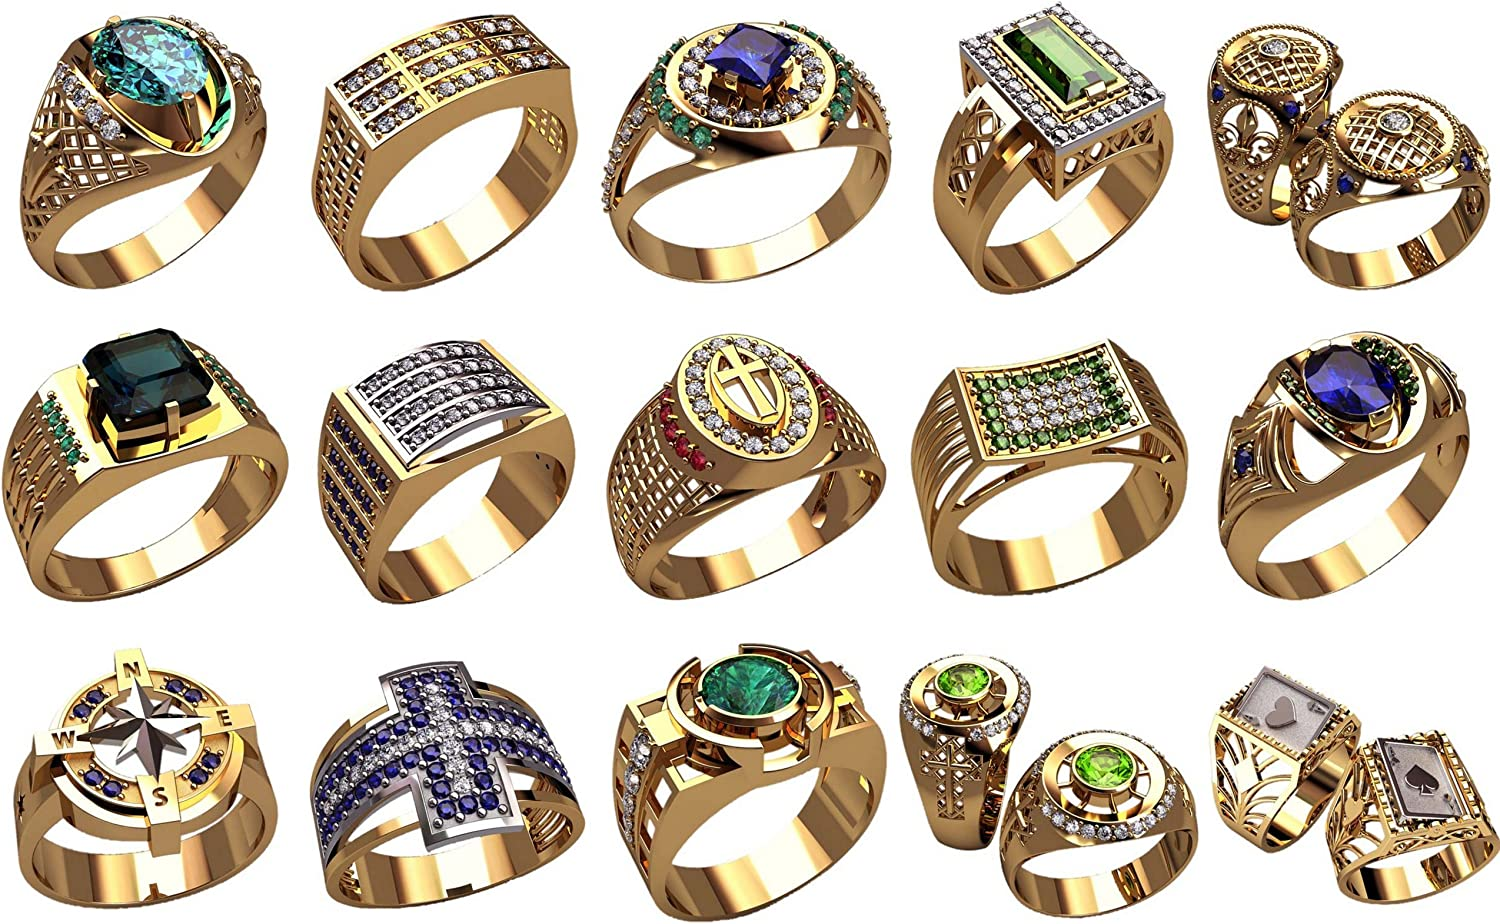 5 pcs Ladie/'s  ring Wax patterns for lost wax casting Gold  jewelry ke-0120